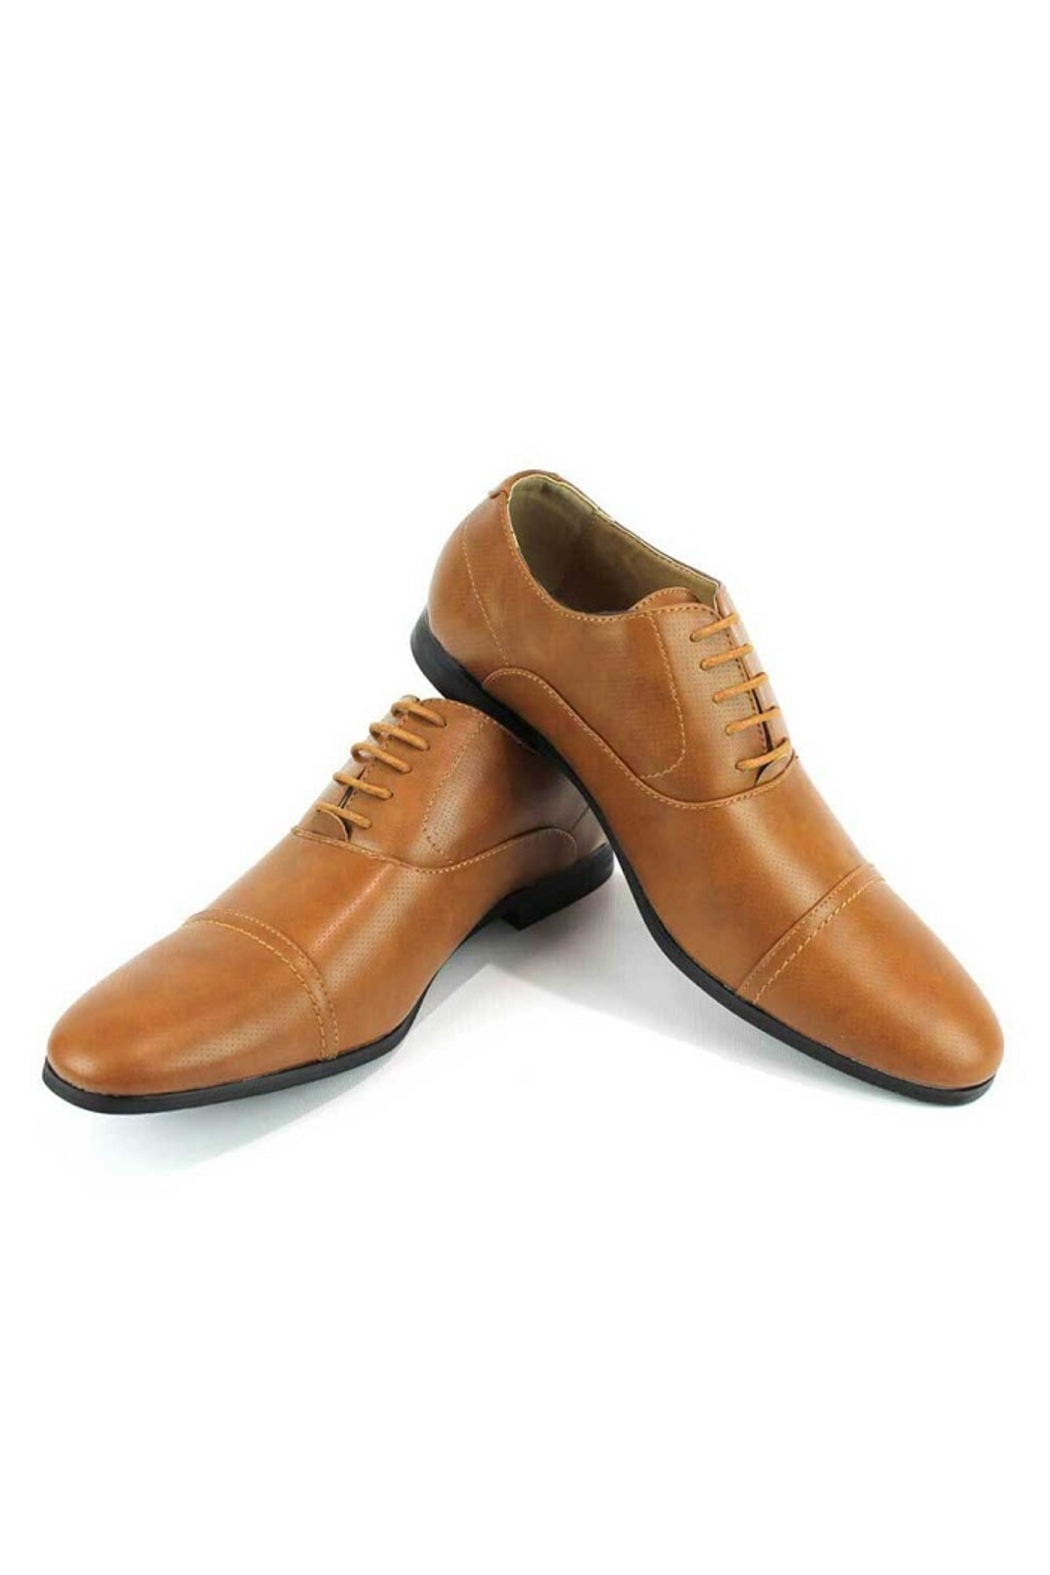 AZM Cognac Dotted Cap Toe Dress Shoes - Front Full Image